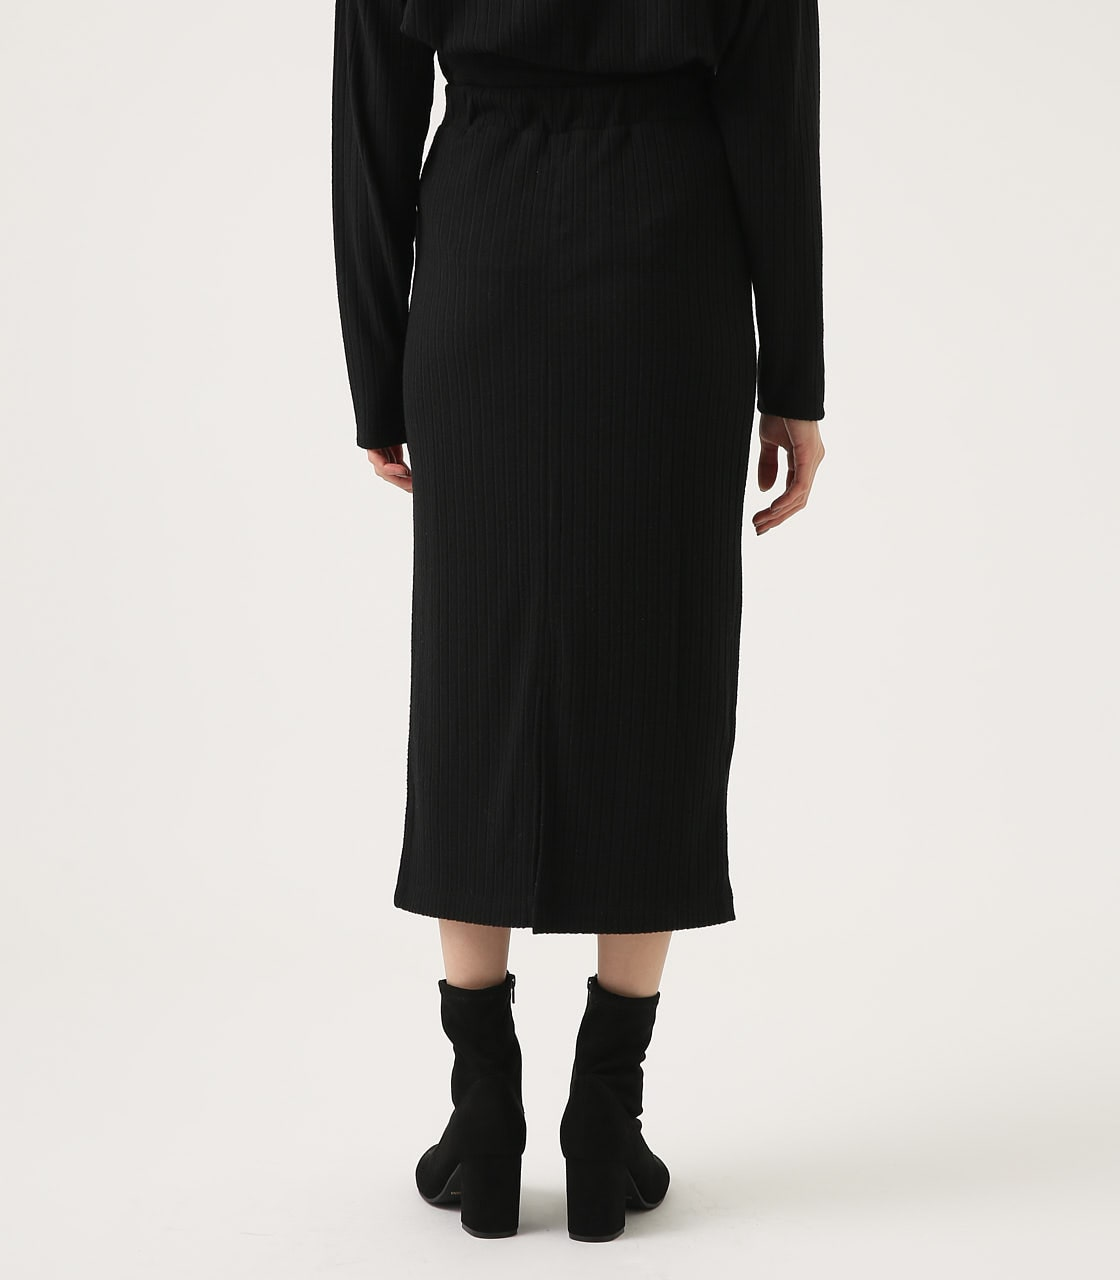 【AZUL BY MOUSSY】BLUSHED TIGHT MIDI SKIRT 詳細画像 BLK 7